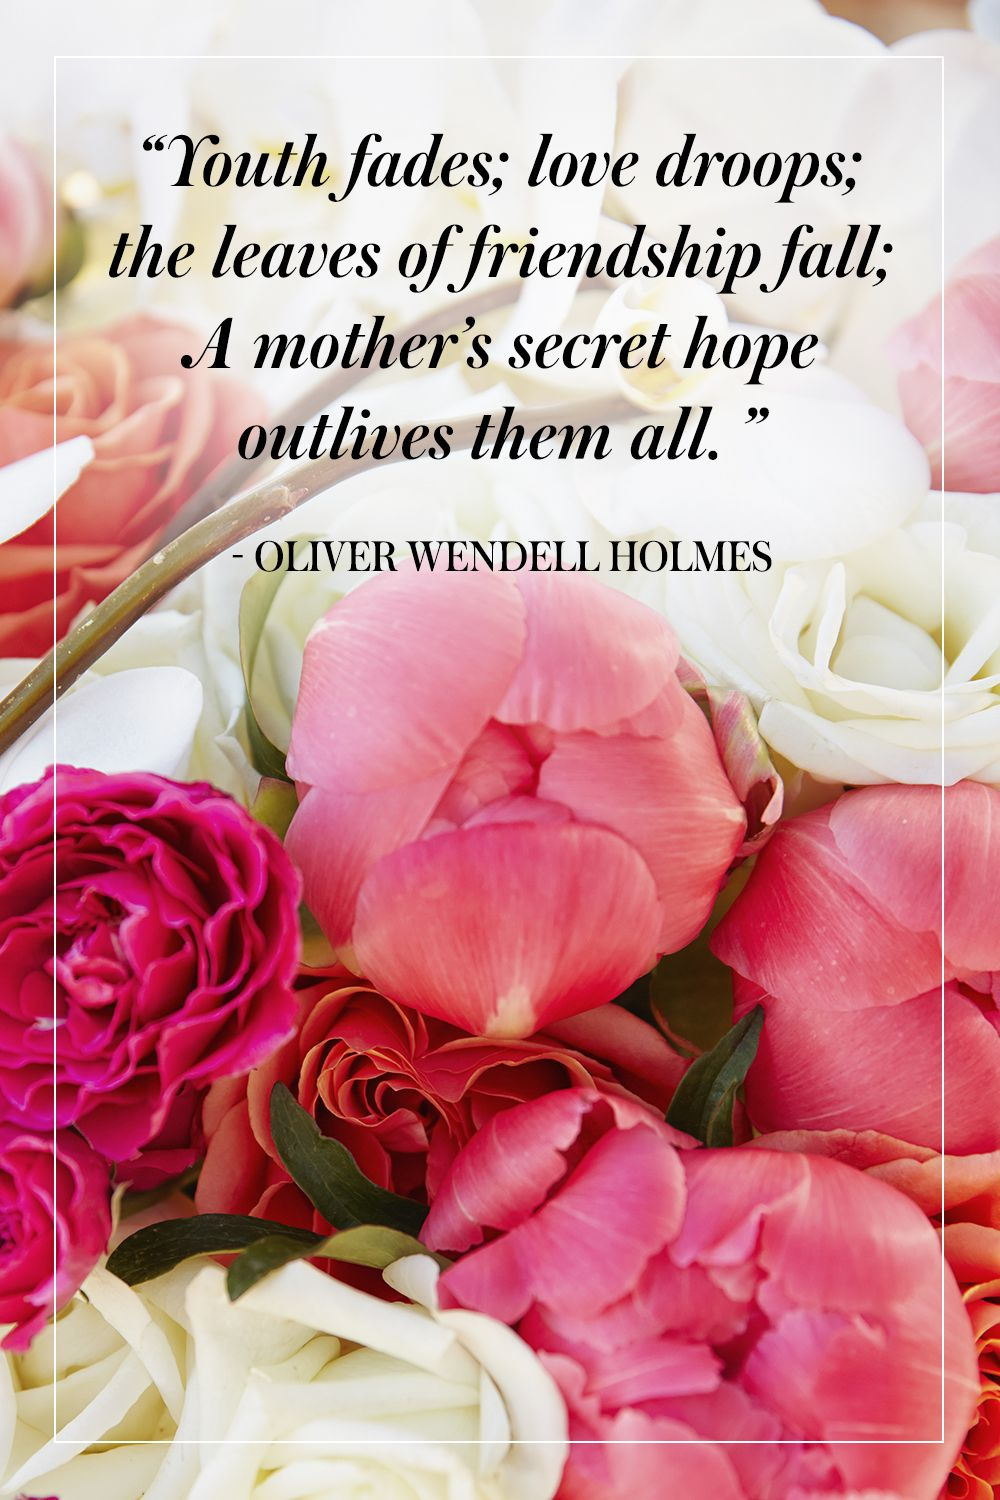 """""""Youth fades; love droops; the leaves of friendship fall; A mother's secret hope outlives them all."""" - Oliver Wendell Holmes"""